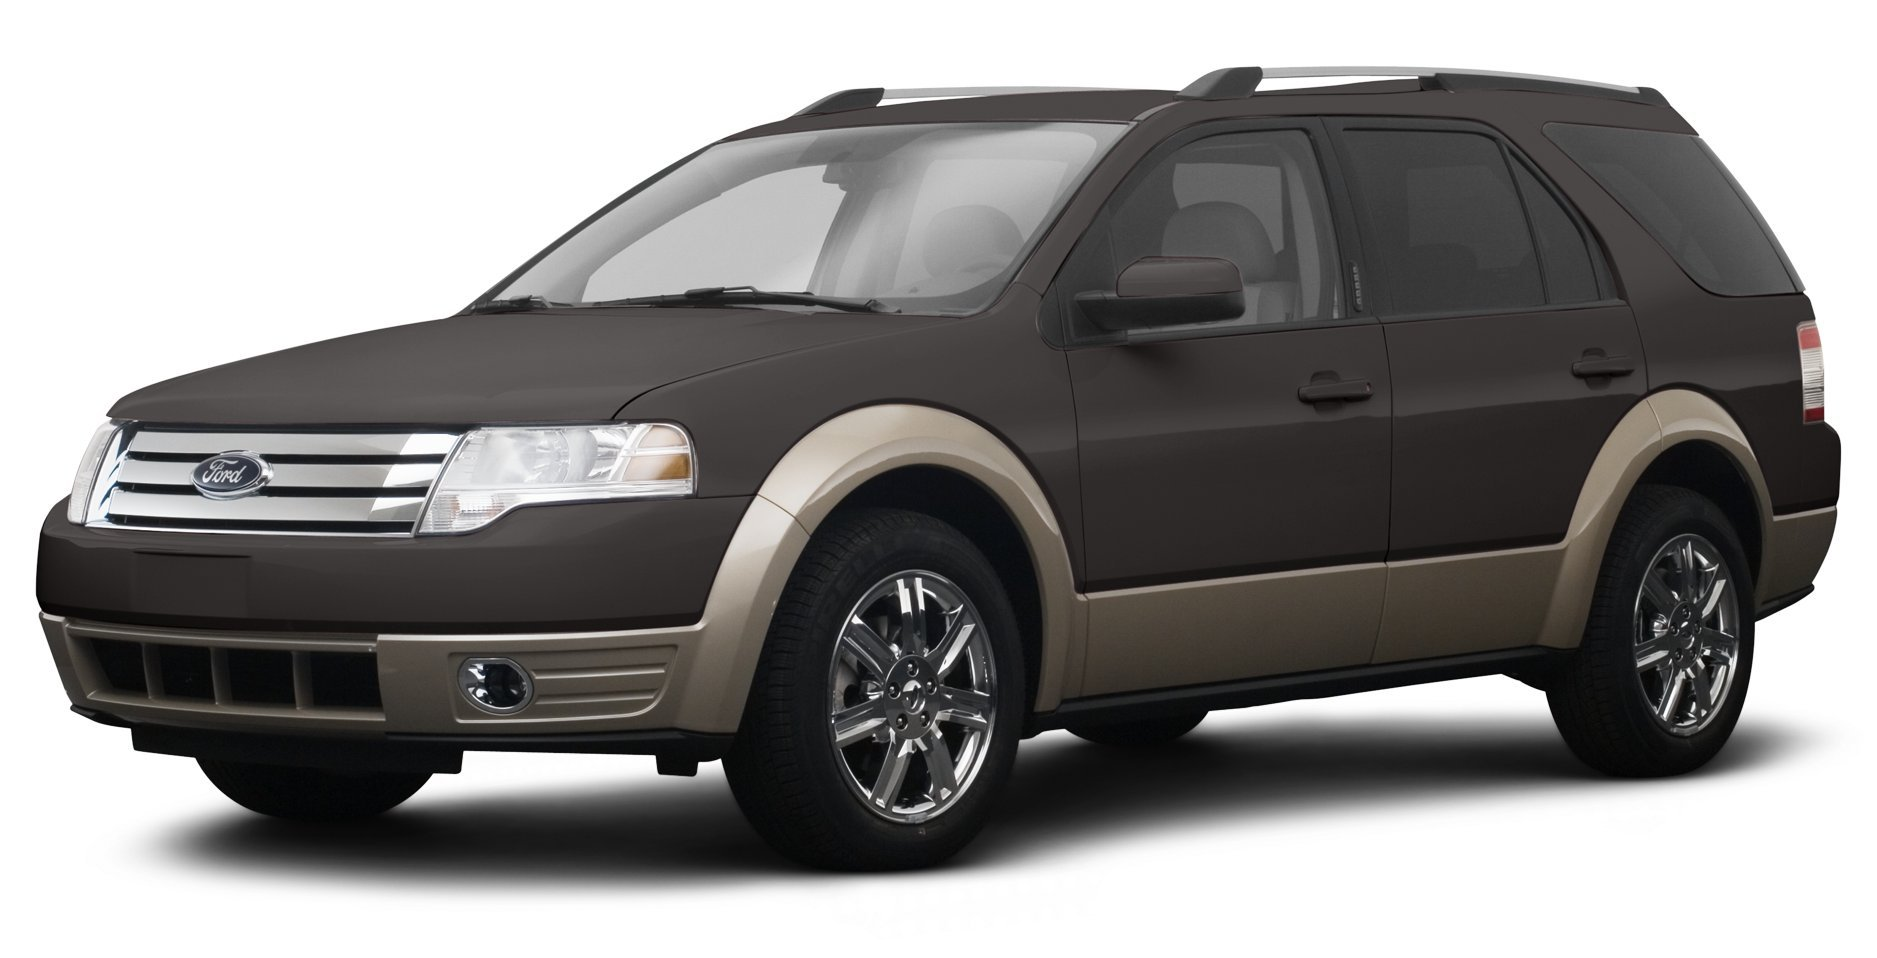 2008 ford taurus x reviews images and specs. Black Bedroom Furniture Sets. Home Design Ideas